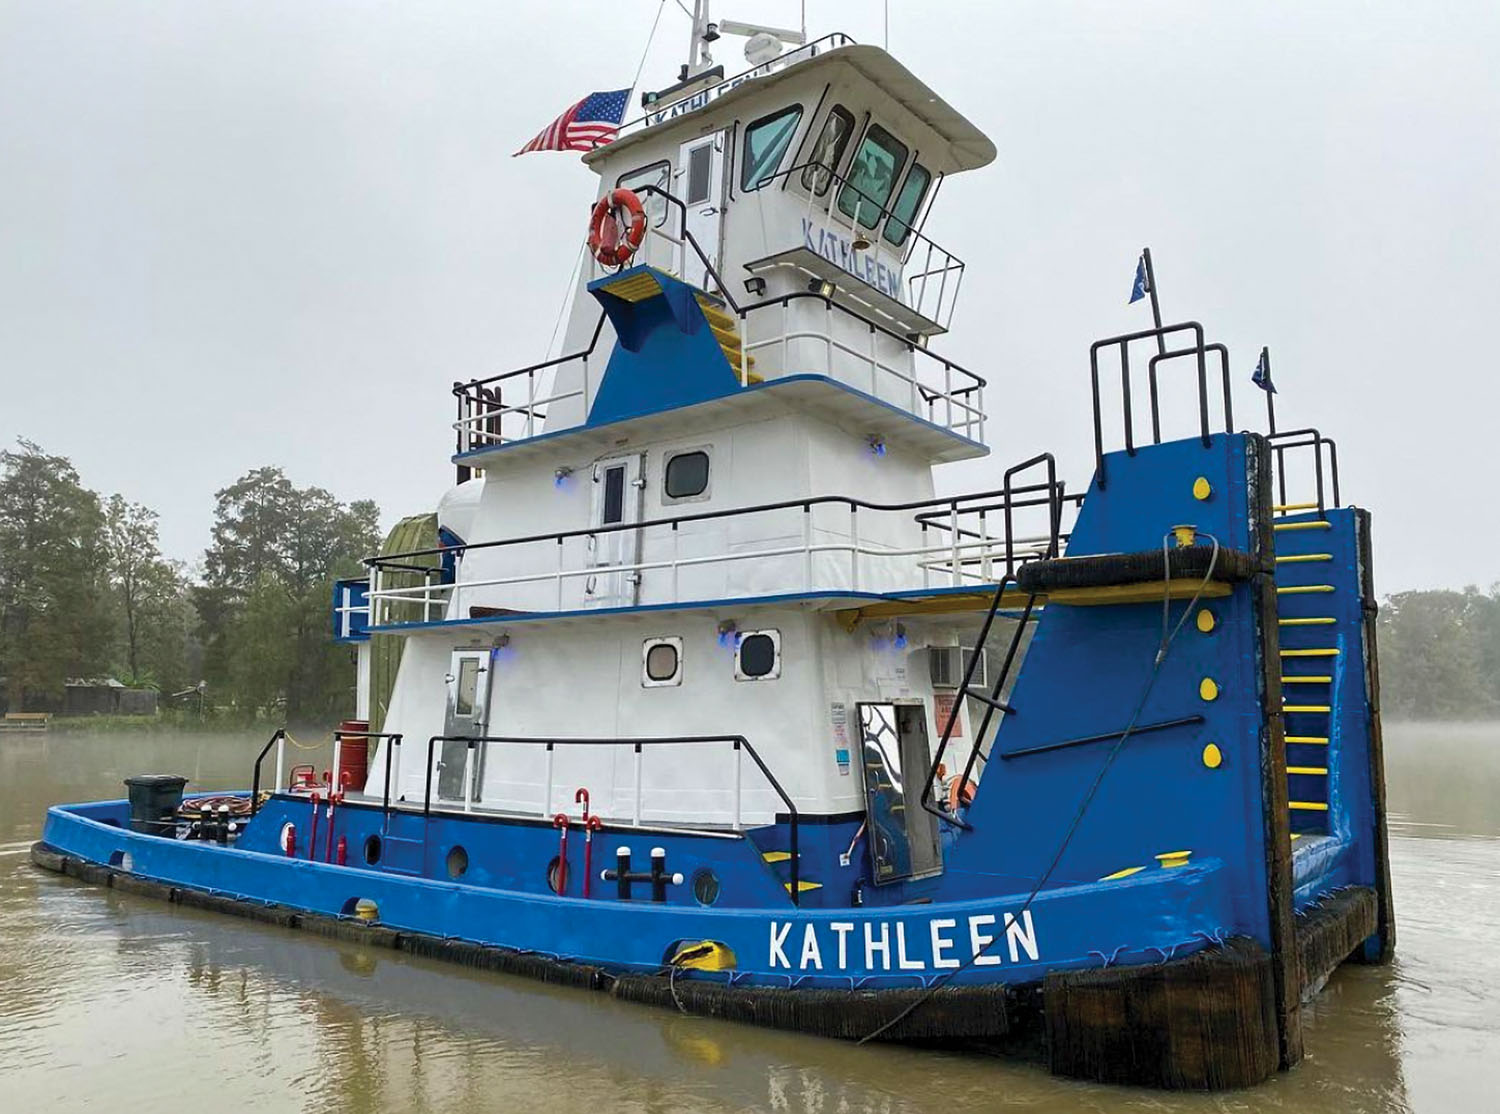 The Kathleen, after it was enlarged in all dimensions in 1971.